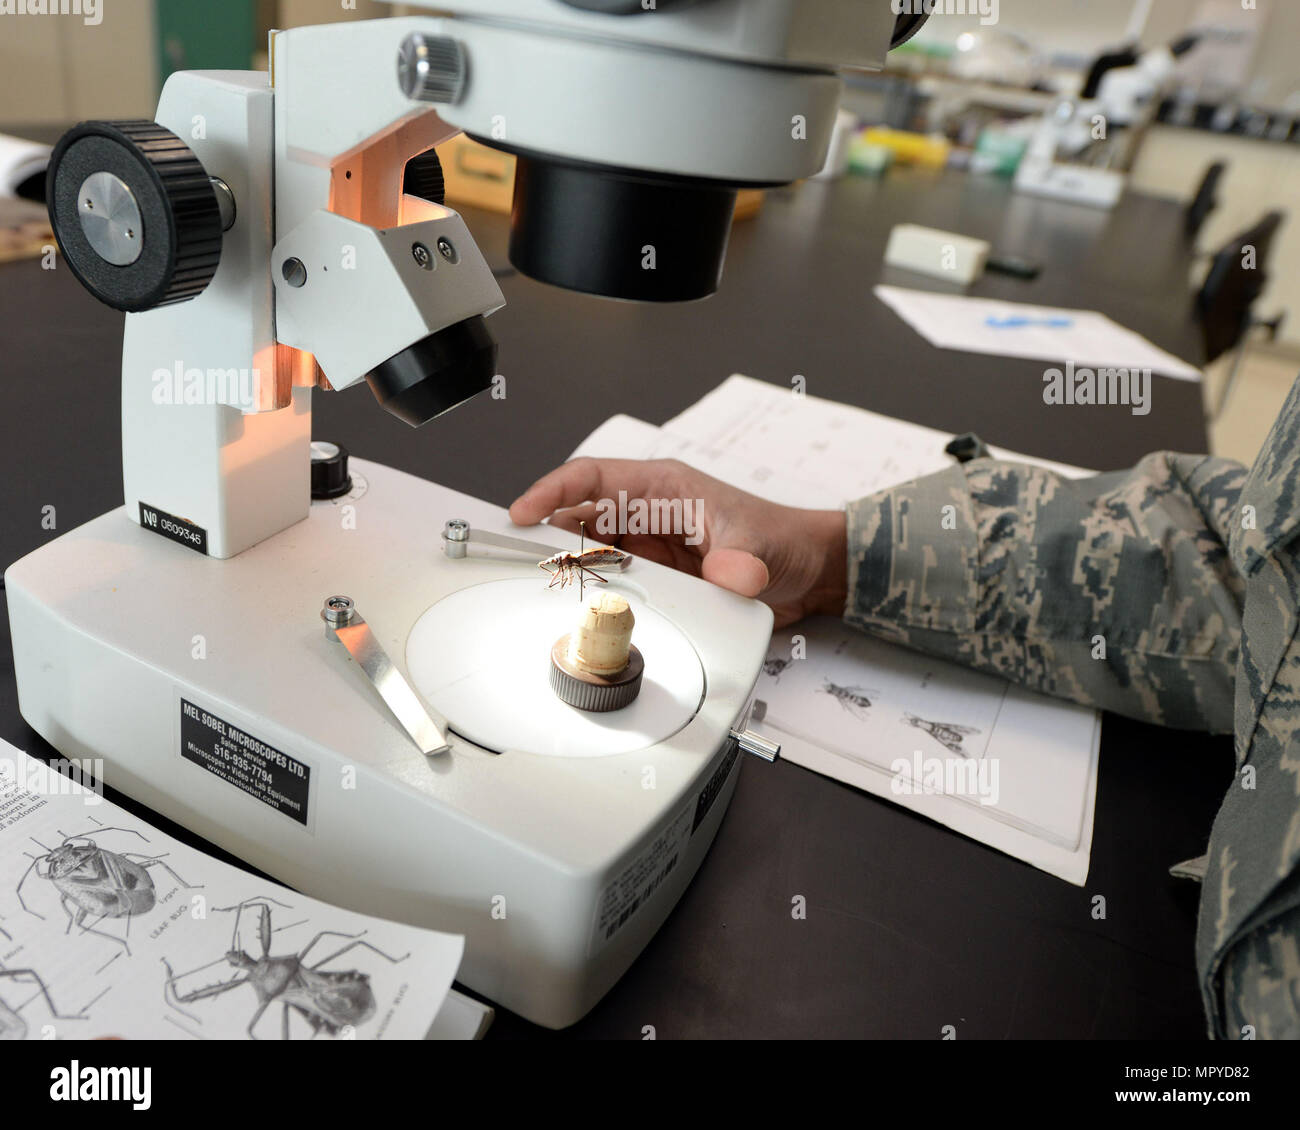 U.S. Air Force Capt. Caroline Brooks, United States Air Force School of Aerospace Medicine Public Health Education Division student, studies a Kissing bug under a microscope inside the entomology lab at the 88th Aerospace Medicine Squadron, Wright-Patterson Air Force Base, Ohio, April 21, 2017. The 88th AMDS students study the mechanical vectors of insects of military importance and the major diseases they transmit. (U.S. Air Force photo by Michelle Gigante/released) - Stock Image